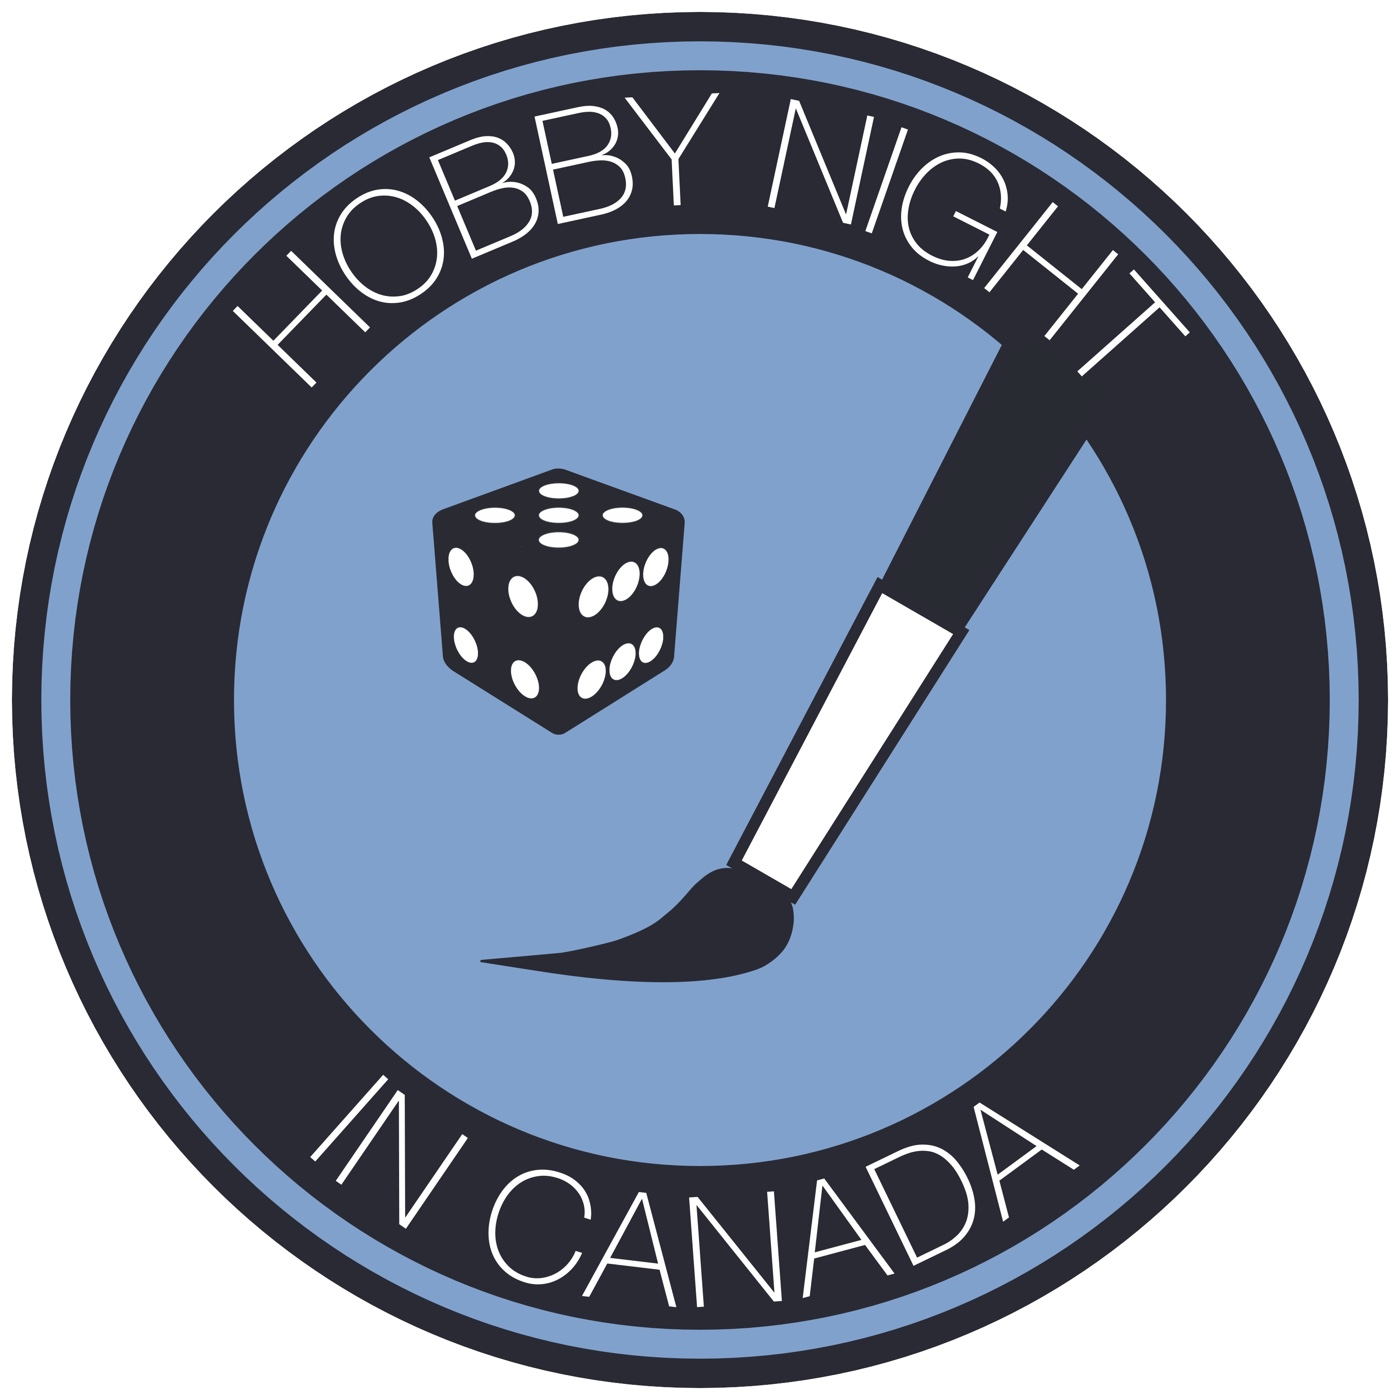 Hobby Night in Canada